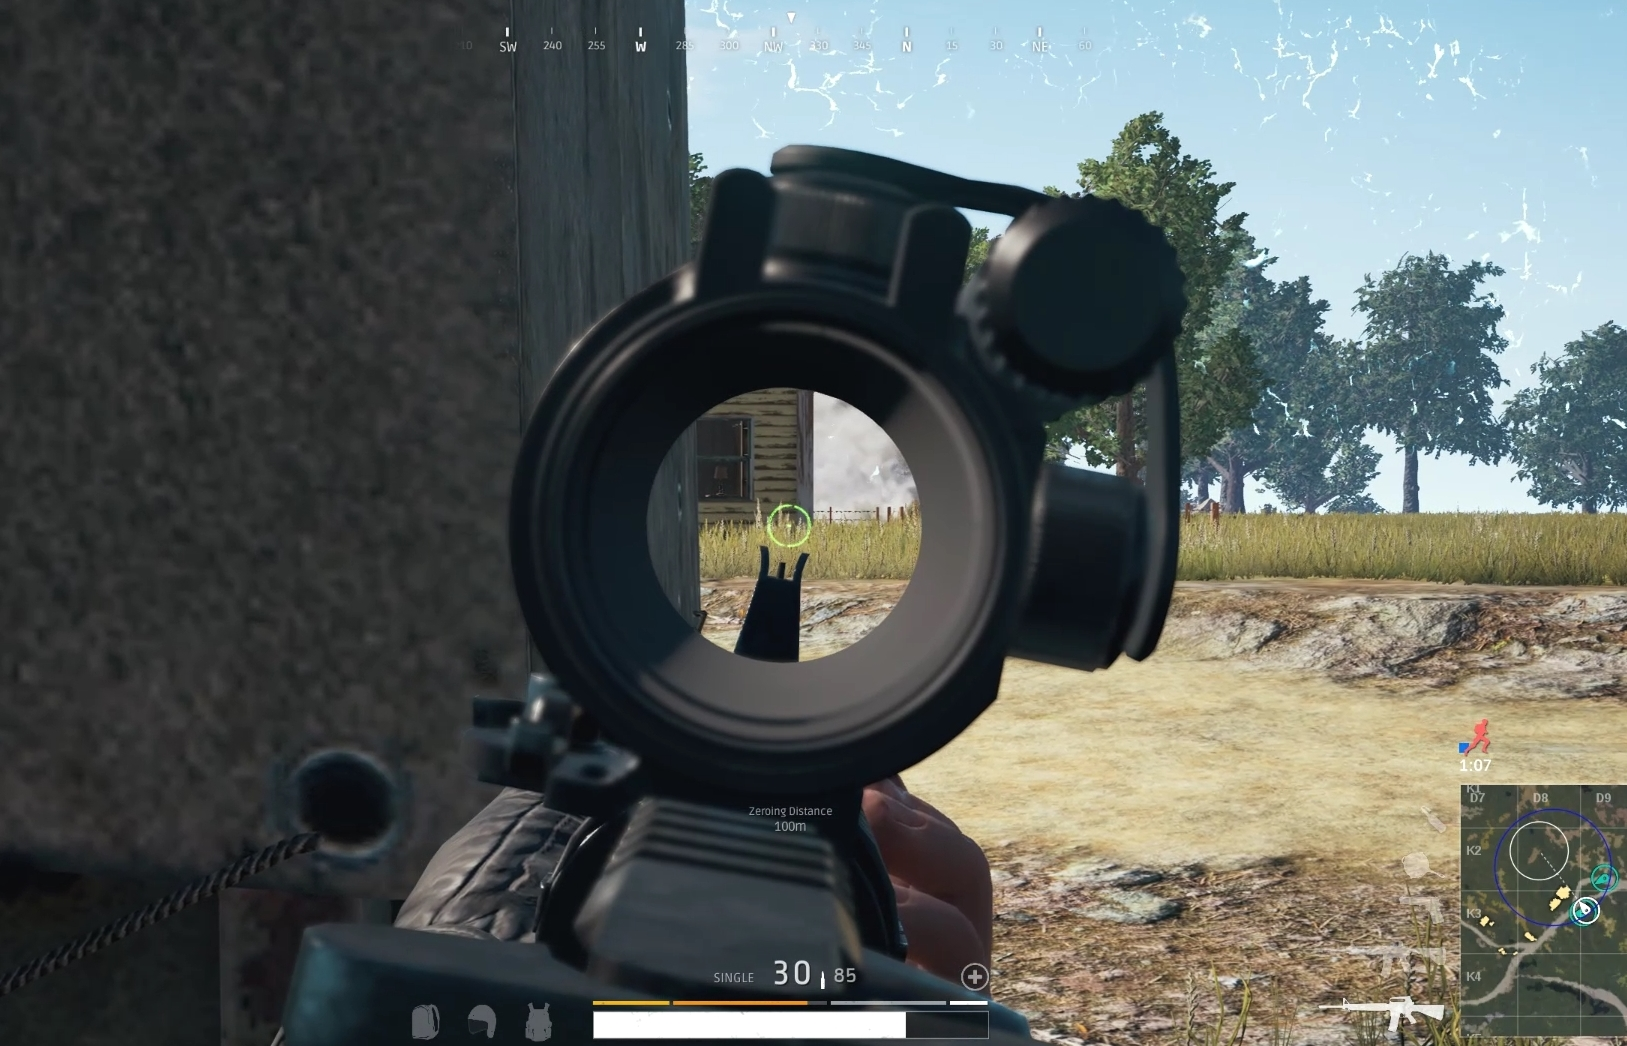 PlayerUnknown's Battlegrounds Has a Big Mid Game Problem | USgamer